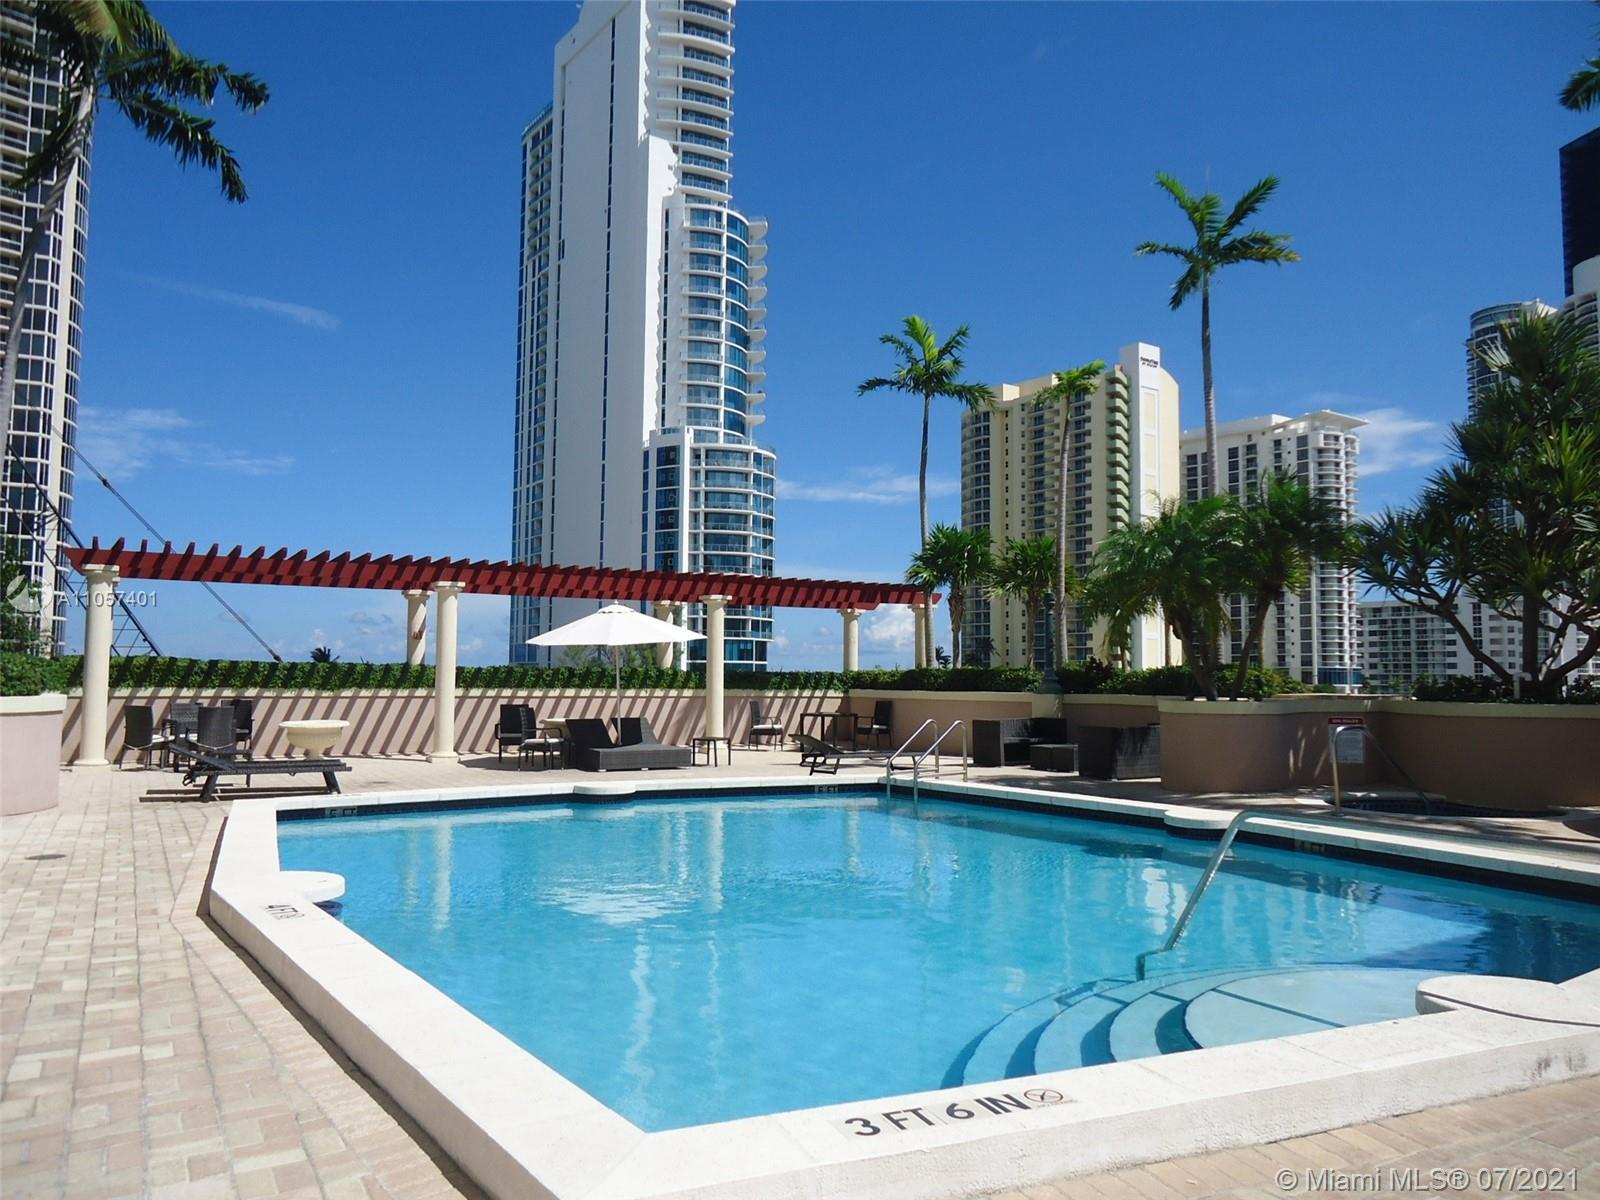 Penthouse, unfurnished, unobstructed Intracoastal water views, steps to ocean beach across street, f